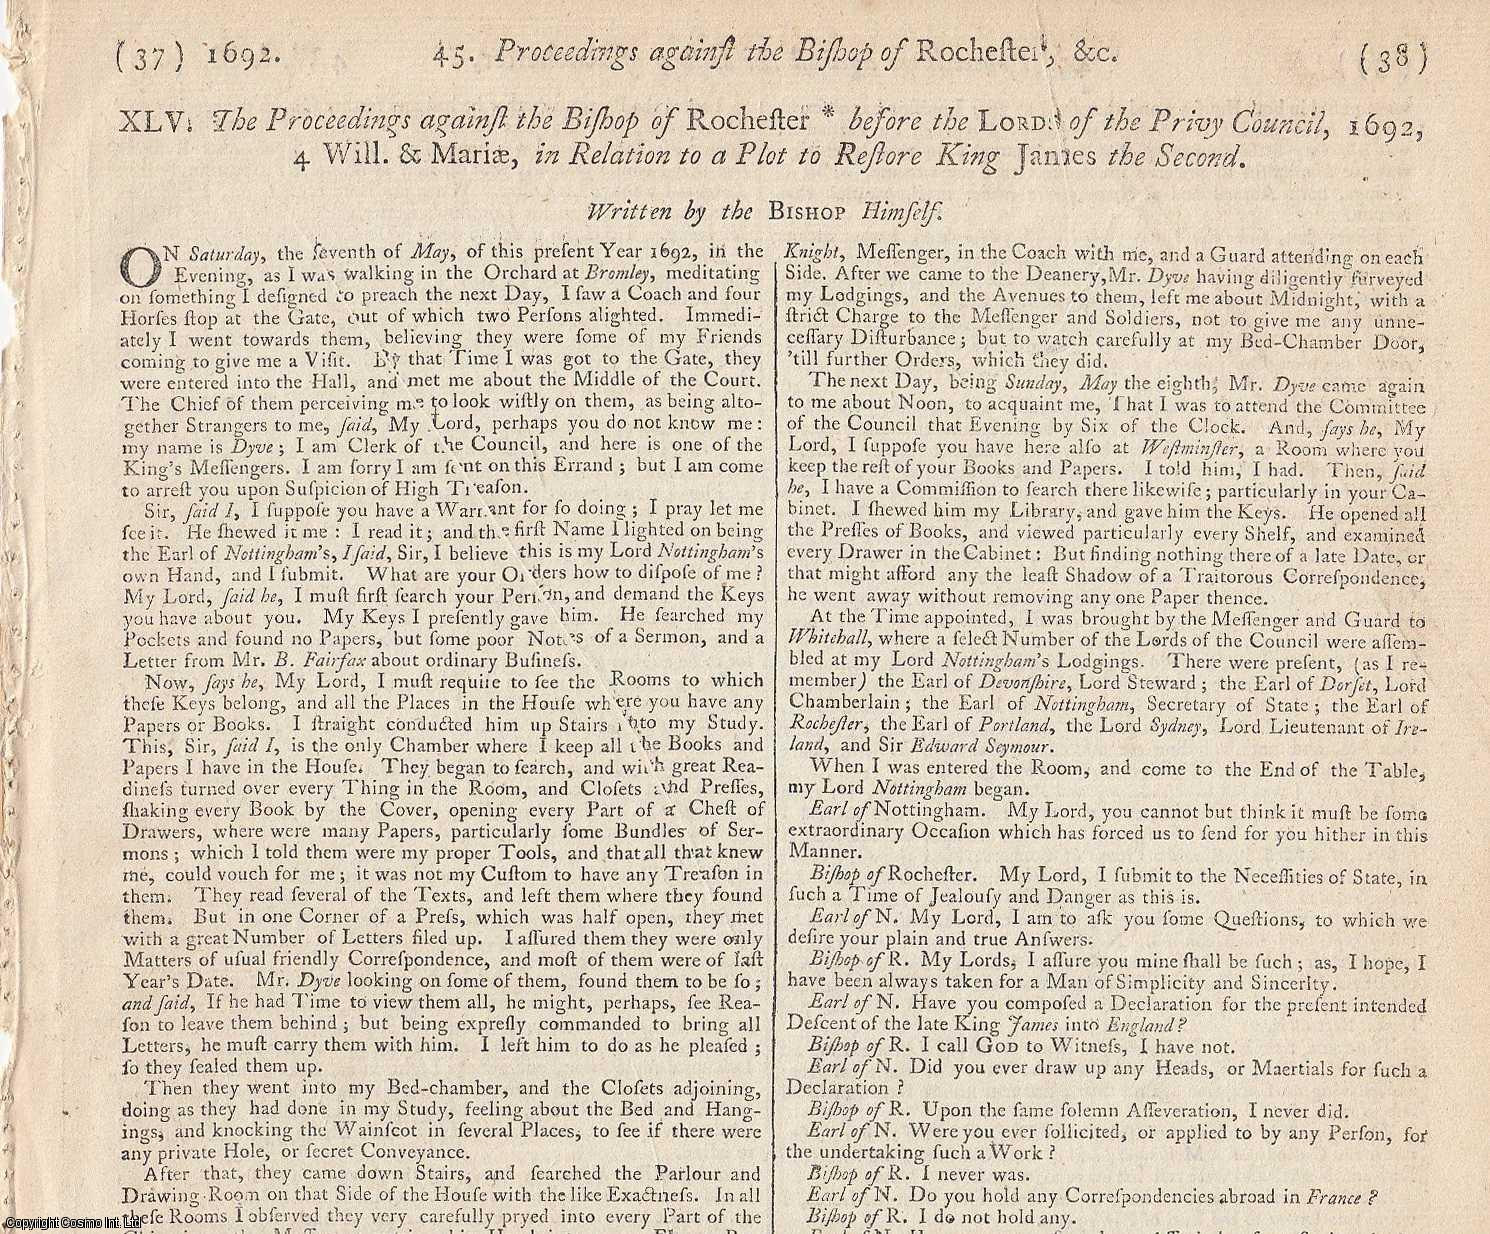 GLORIOUS REVOLUTION - FLOWERPOT PLOT.  The Proceedings against the Bishop of Rochester [Thomas Sprat] before the Lords of the Privy Council, 1692, in Relation to a Plot to Restore King James the Second. Written by the Bishop Himself., [Trial].